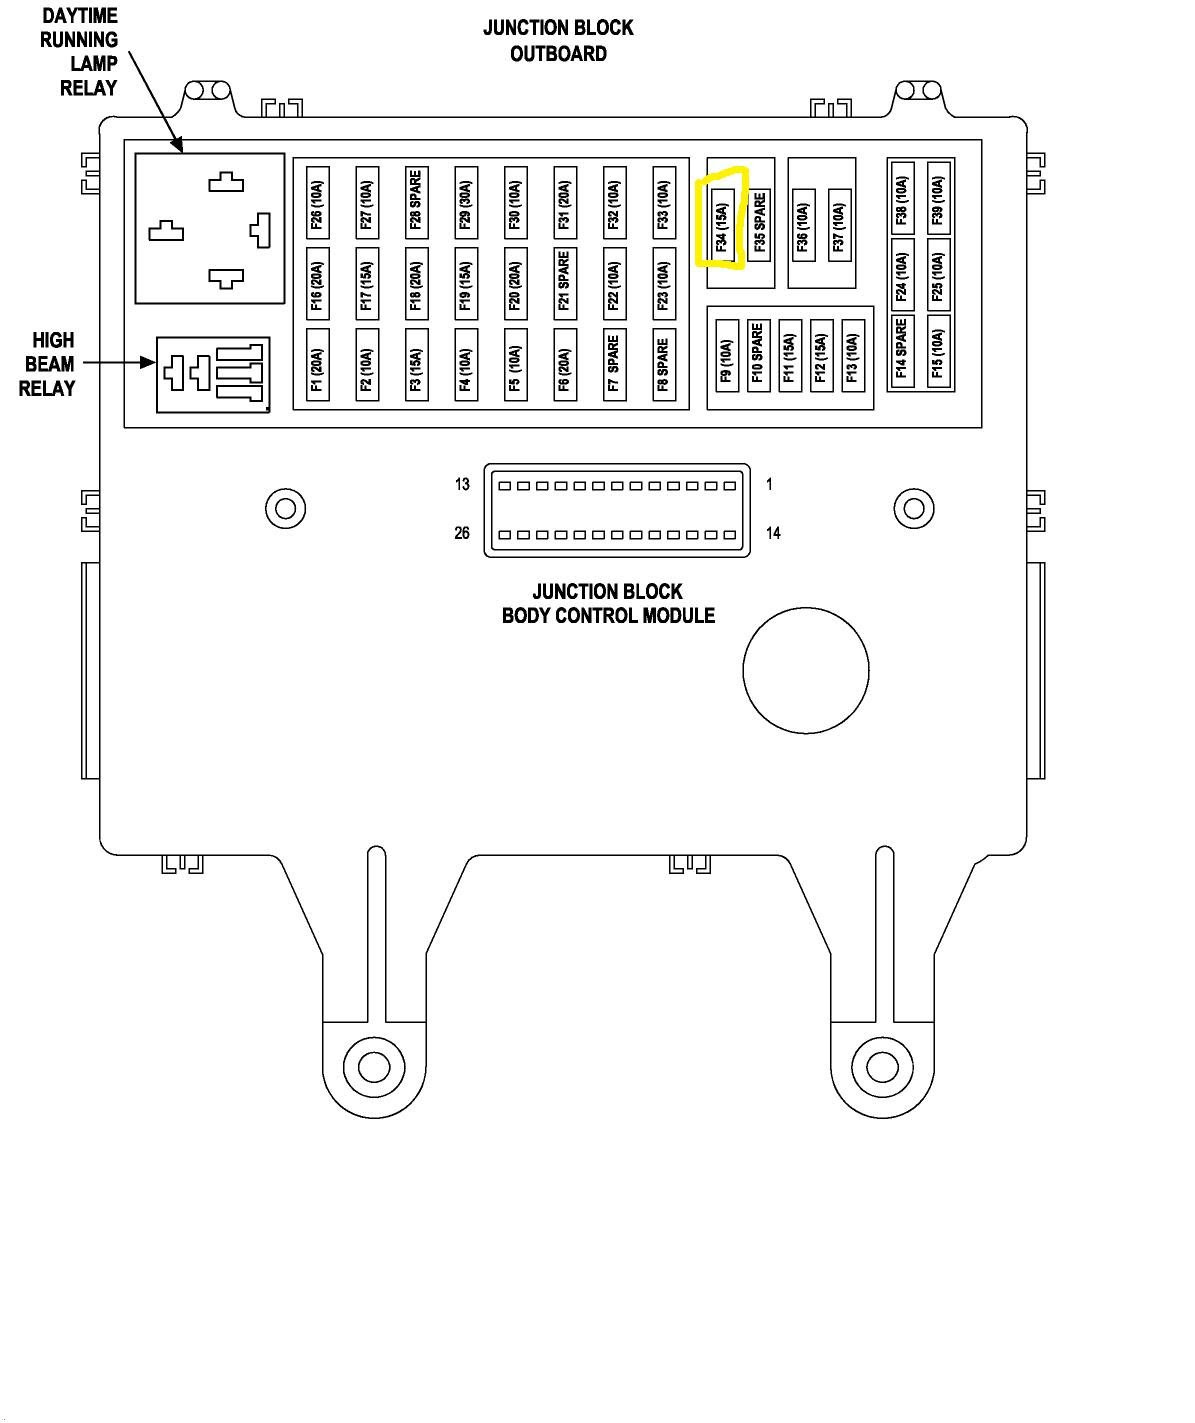 2012 Jeep Liberty Wiring Diagram Images